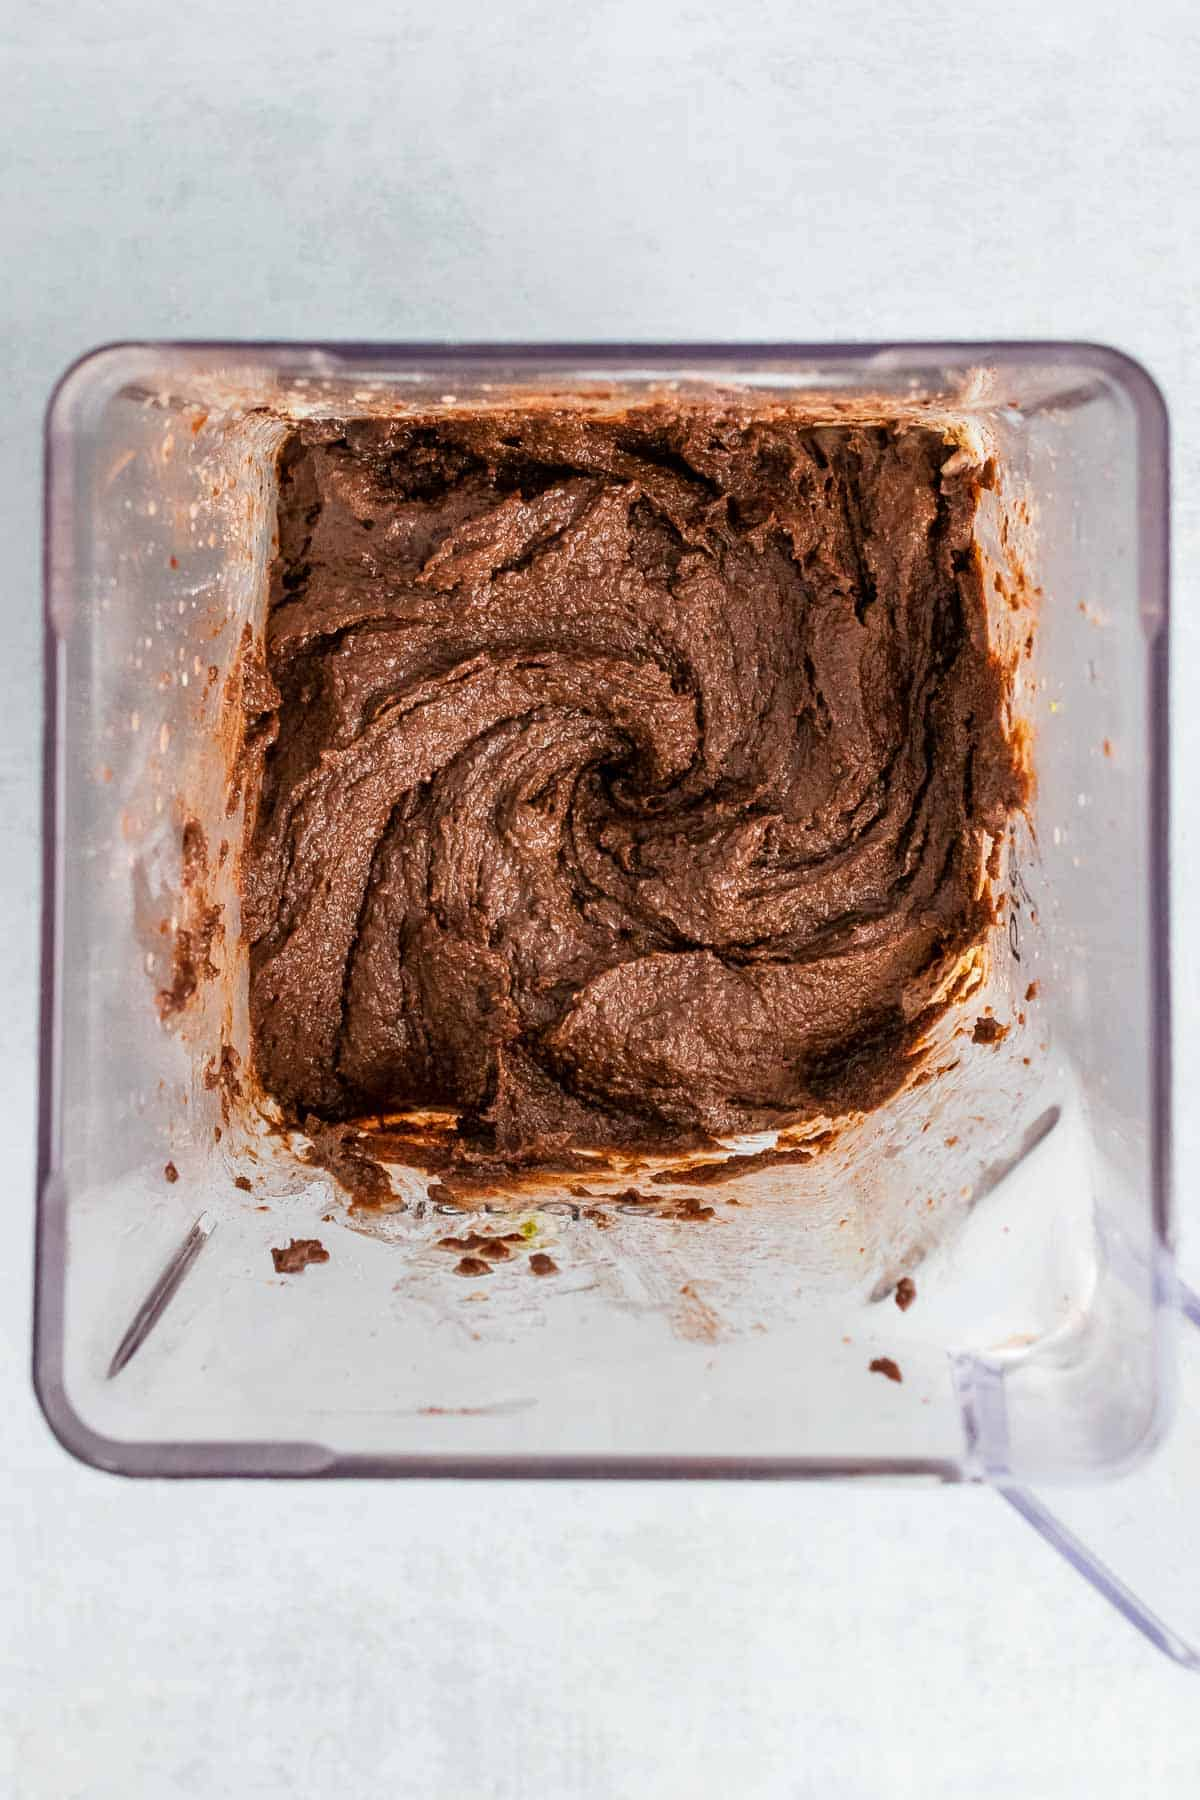 Brownie batter mixed together in the blender, as seen from above